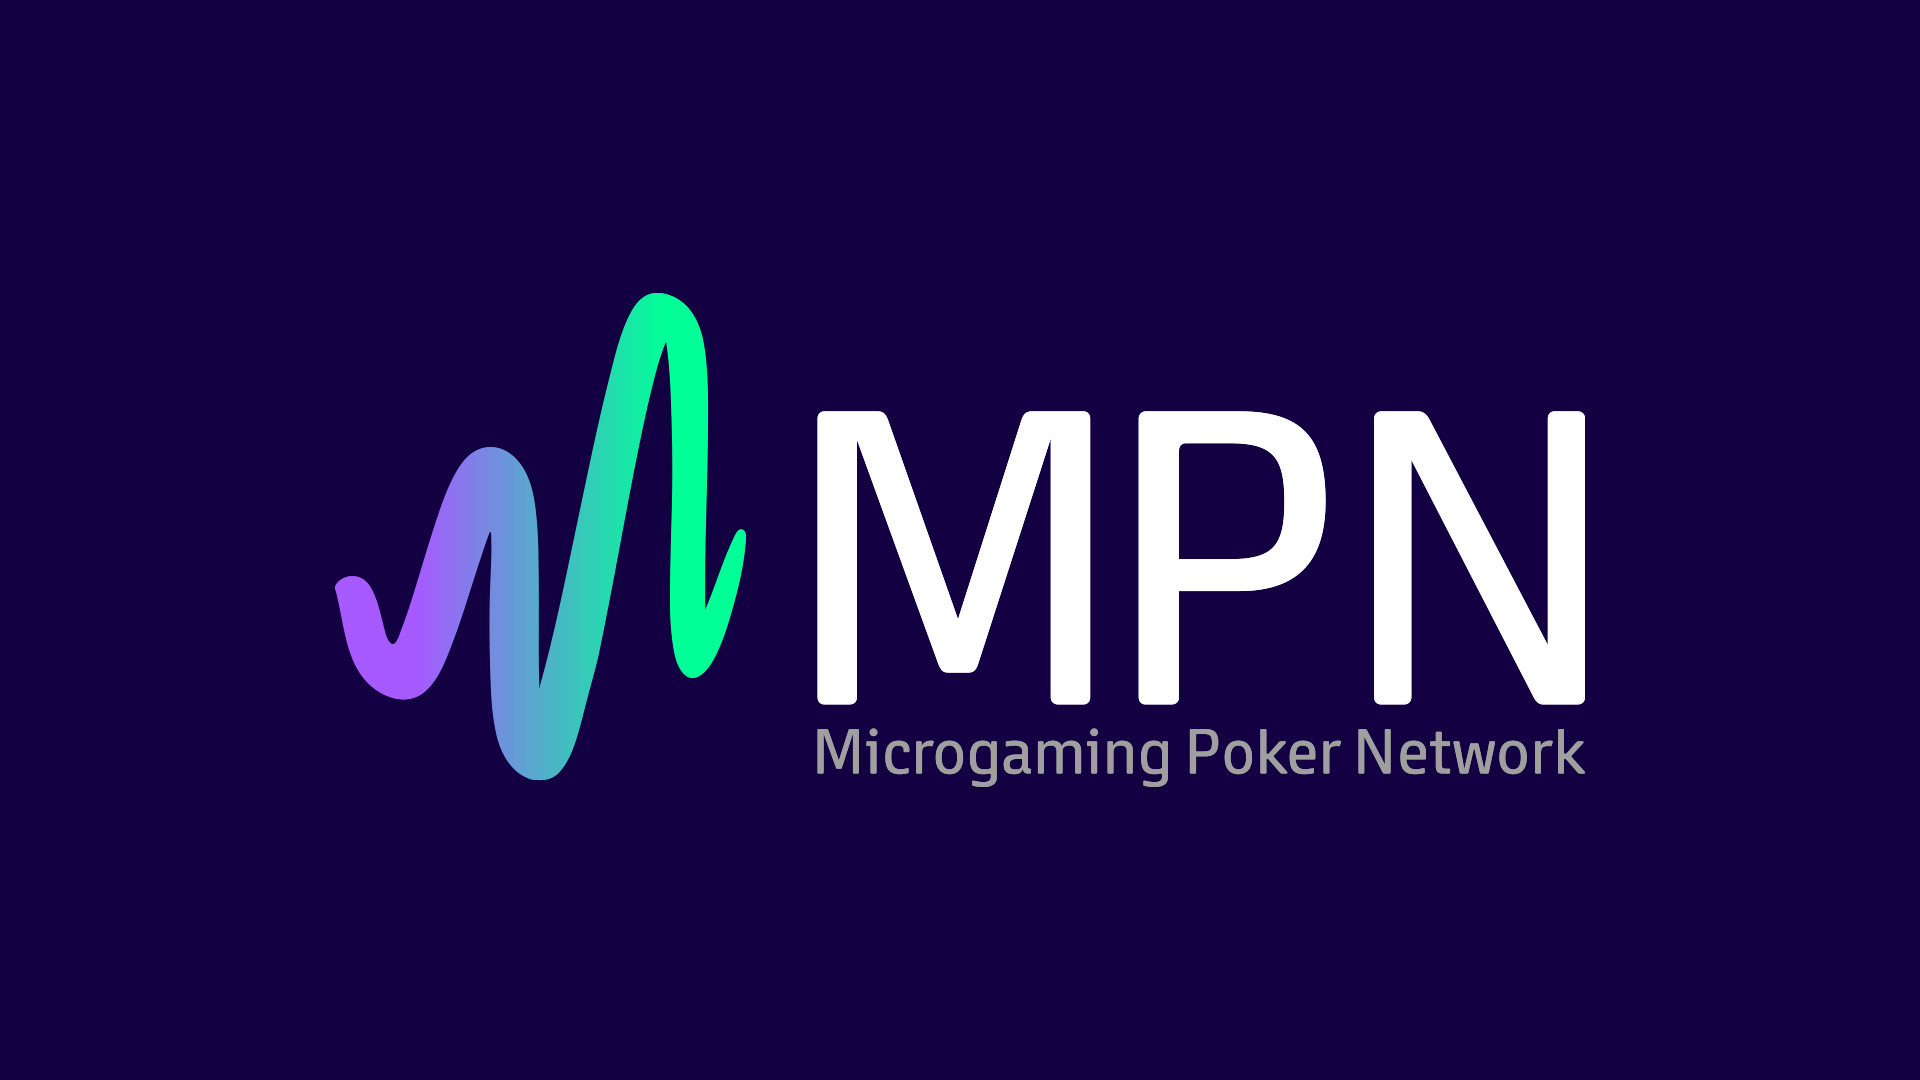 Microgaming Poker Network (MPN).